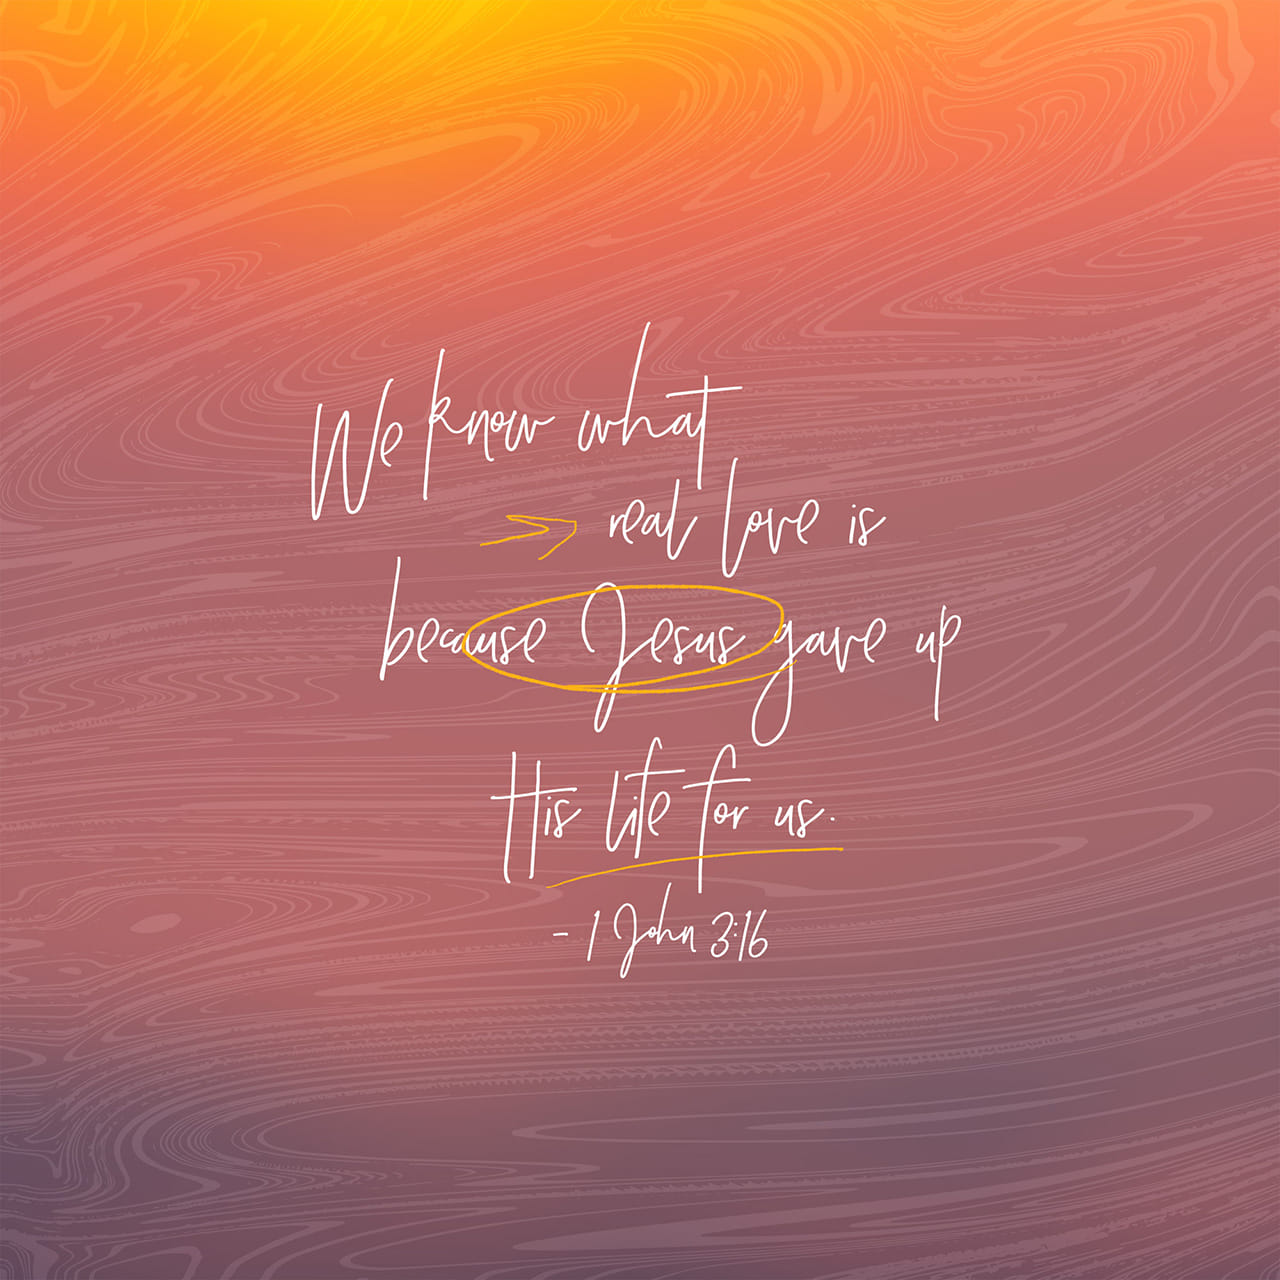 1 John 3:16 Hereby perceive we the love of God, because he laid down his life for us: and we ought to lay down our lives for the brethren. | King James Version (KJV)